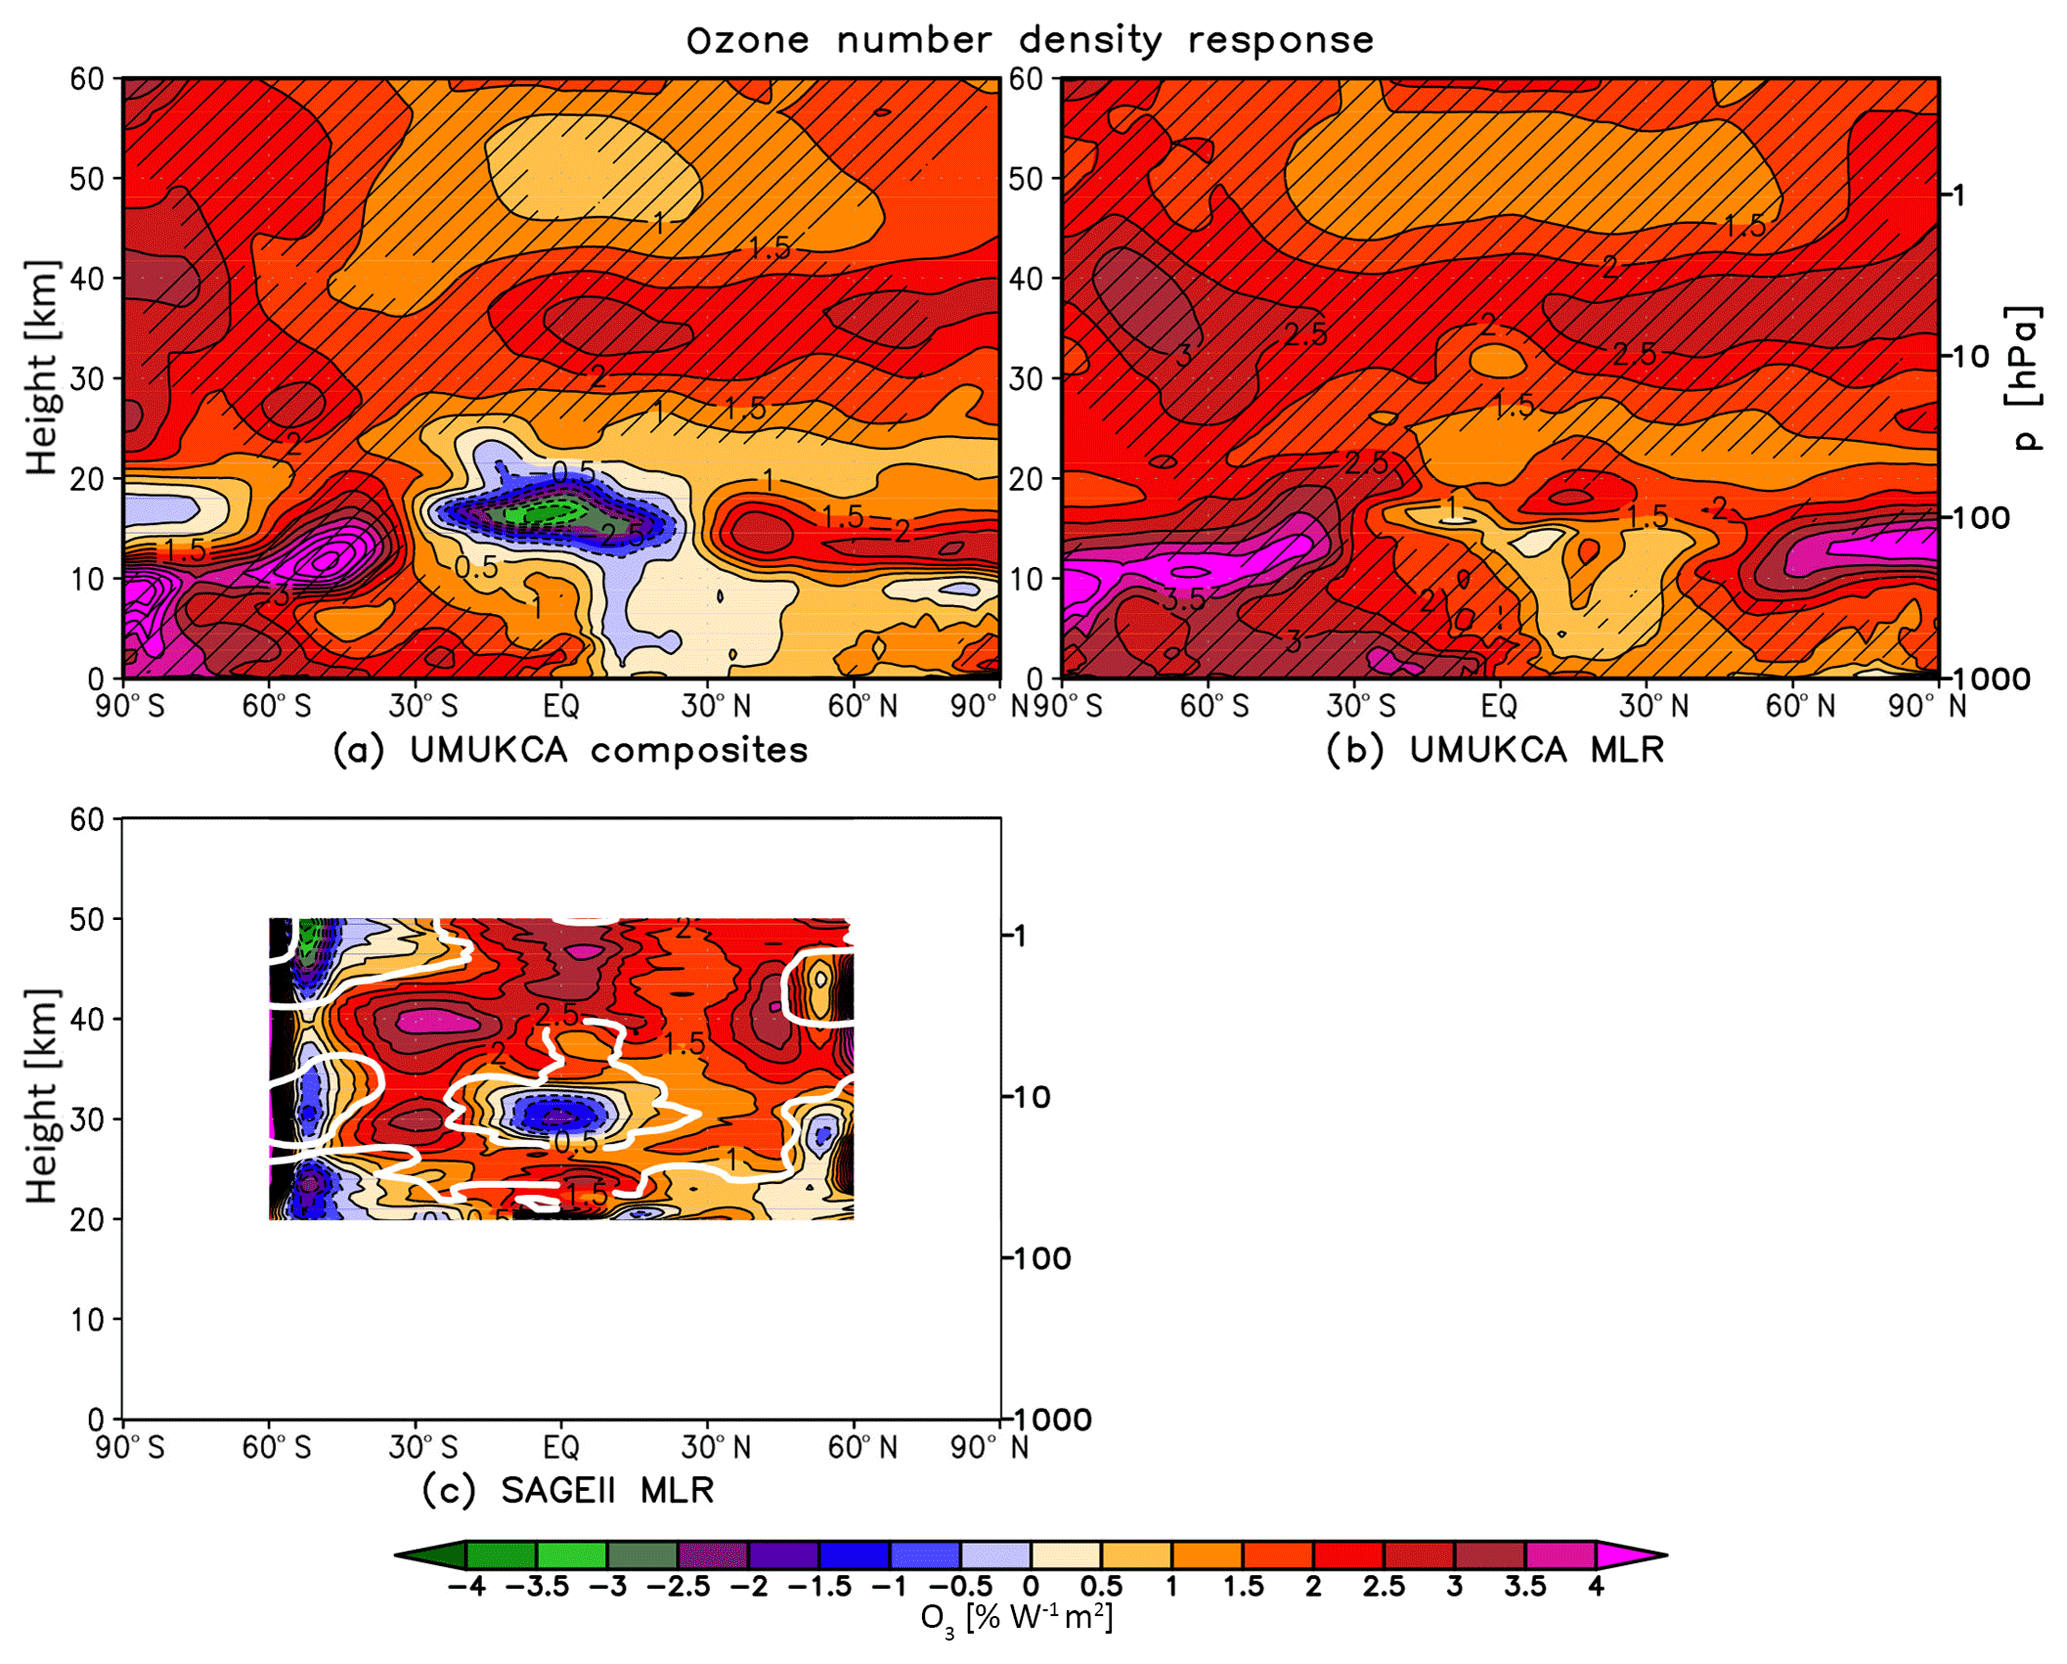 ACP - Simulating the atmospheric response to the 11-year